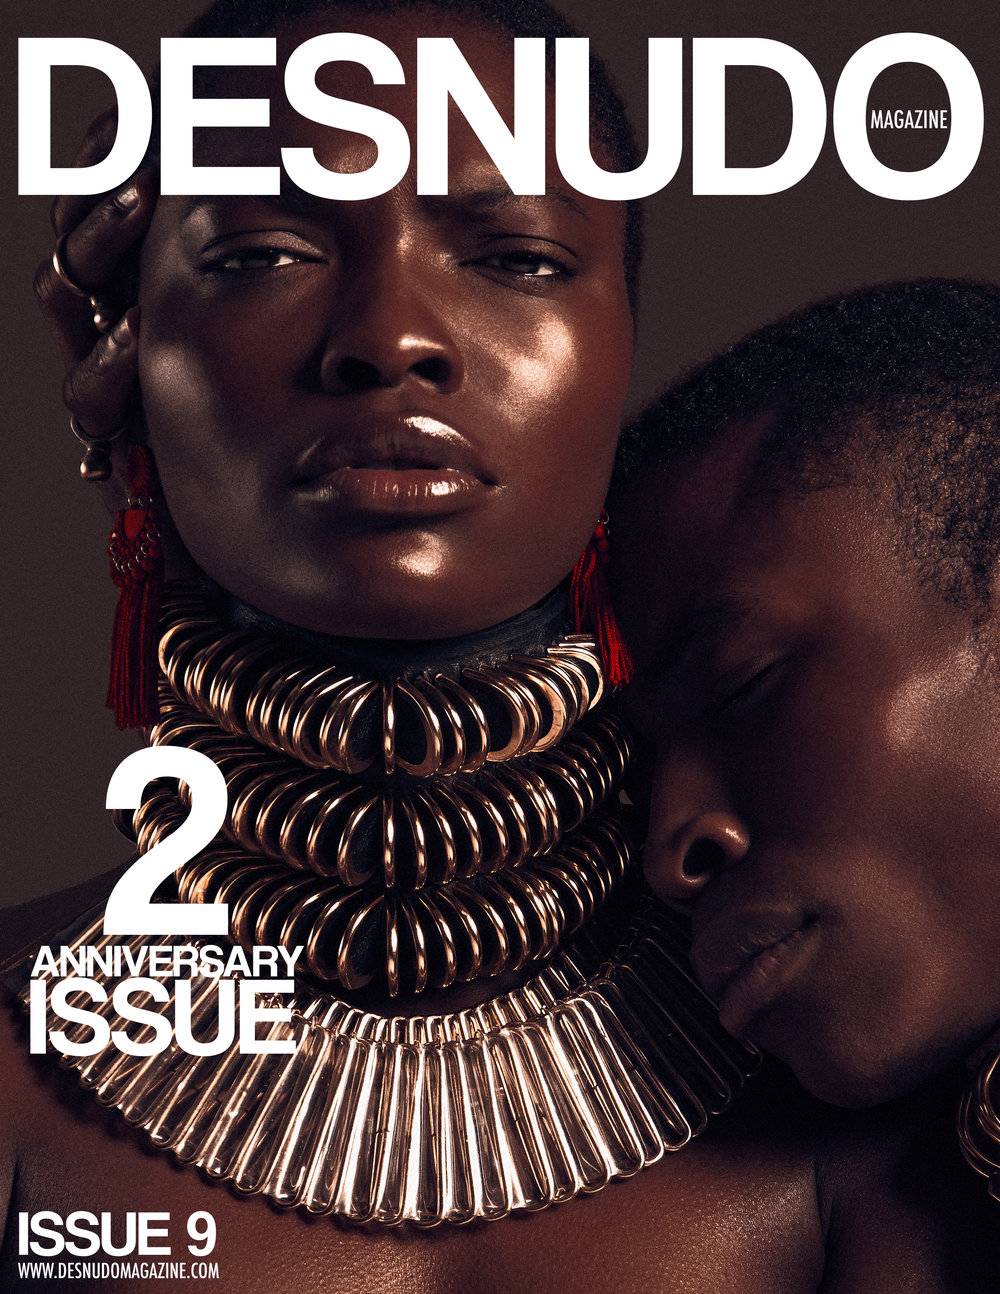 Desnudo Cover April 2018 Issue